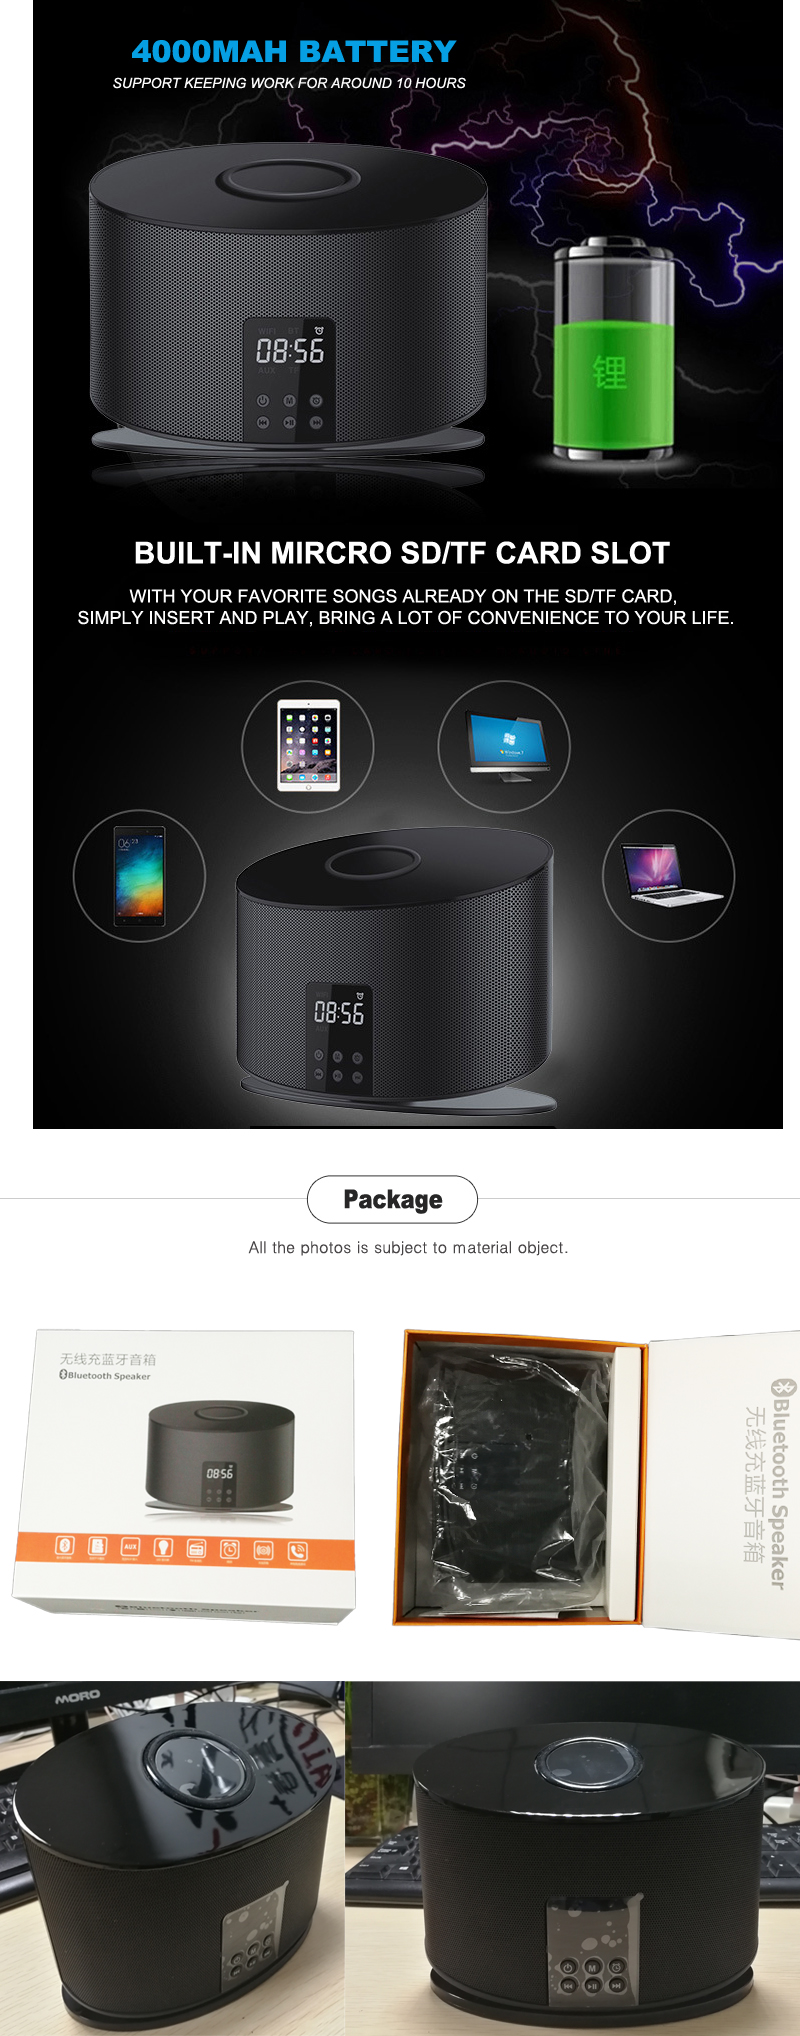 Portable Wireless Music player Blue-tooth Radio Speaker with Alarm clock, Radio, Dock Charging Station